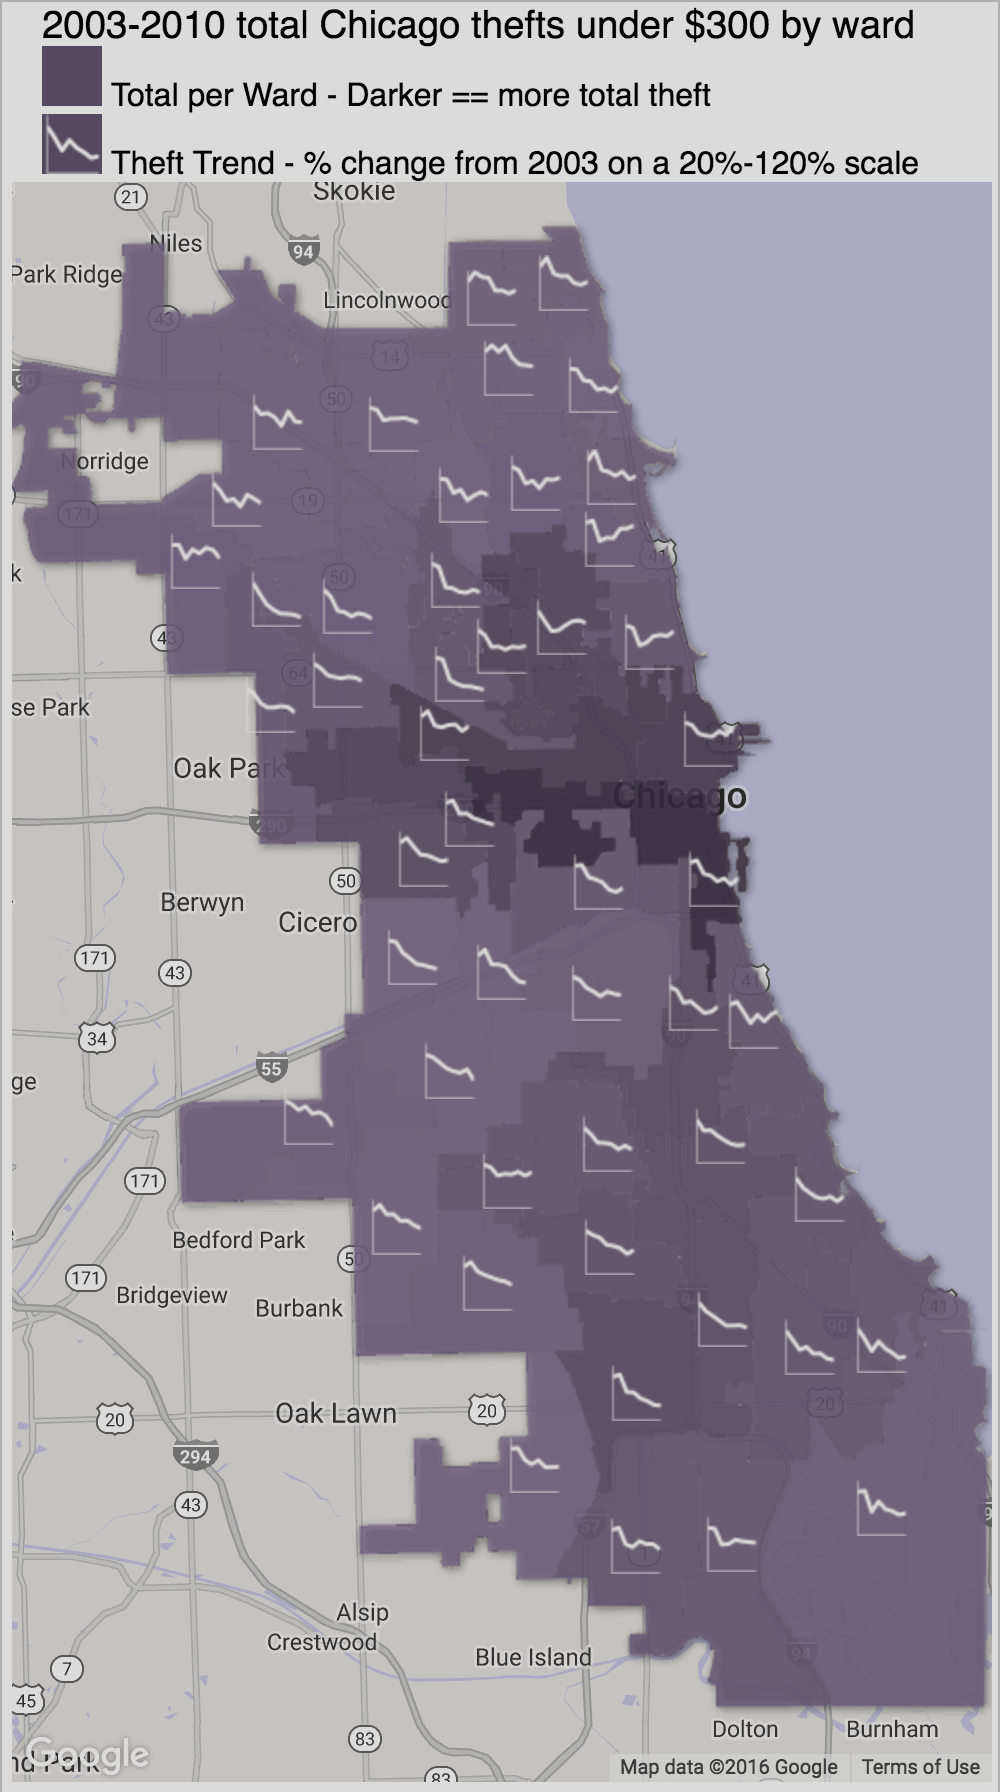 chicago theft visualization by ward